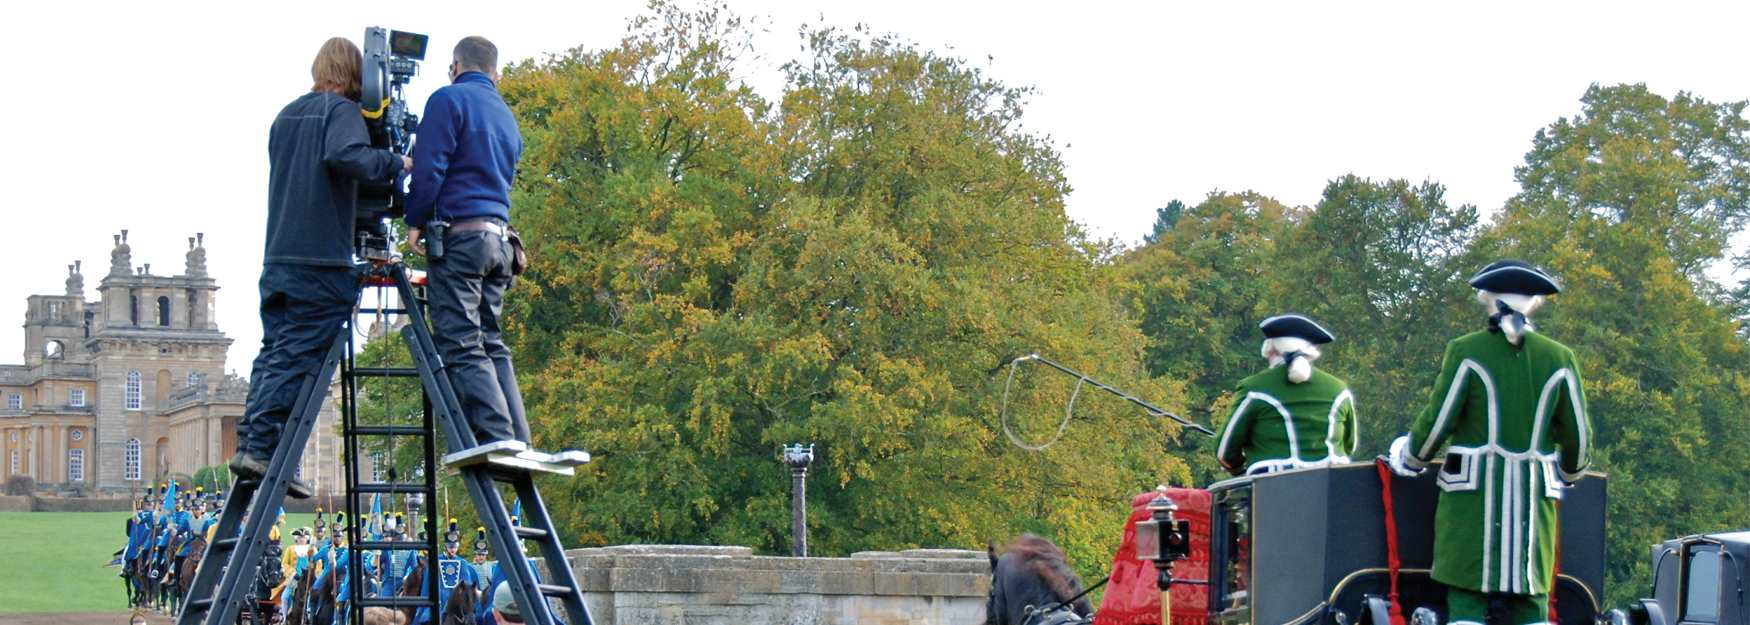 Filming Cinderella at Blenheim Palace